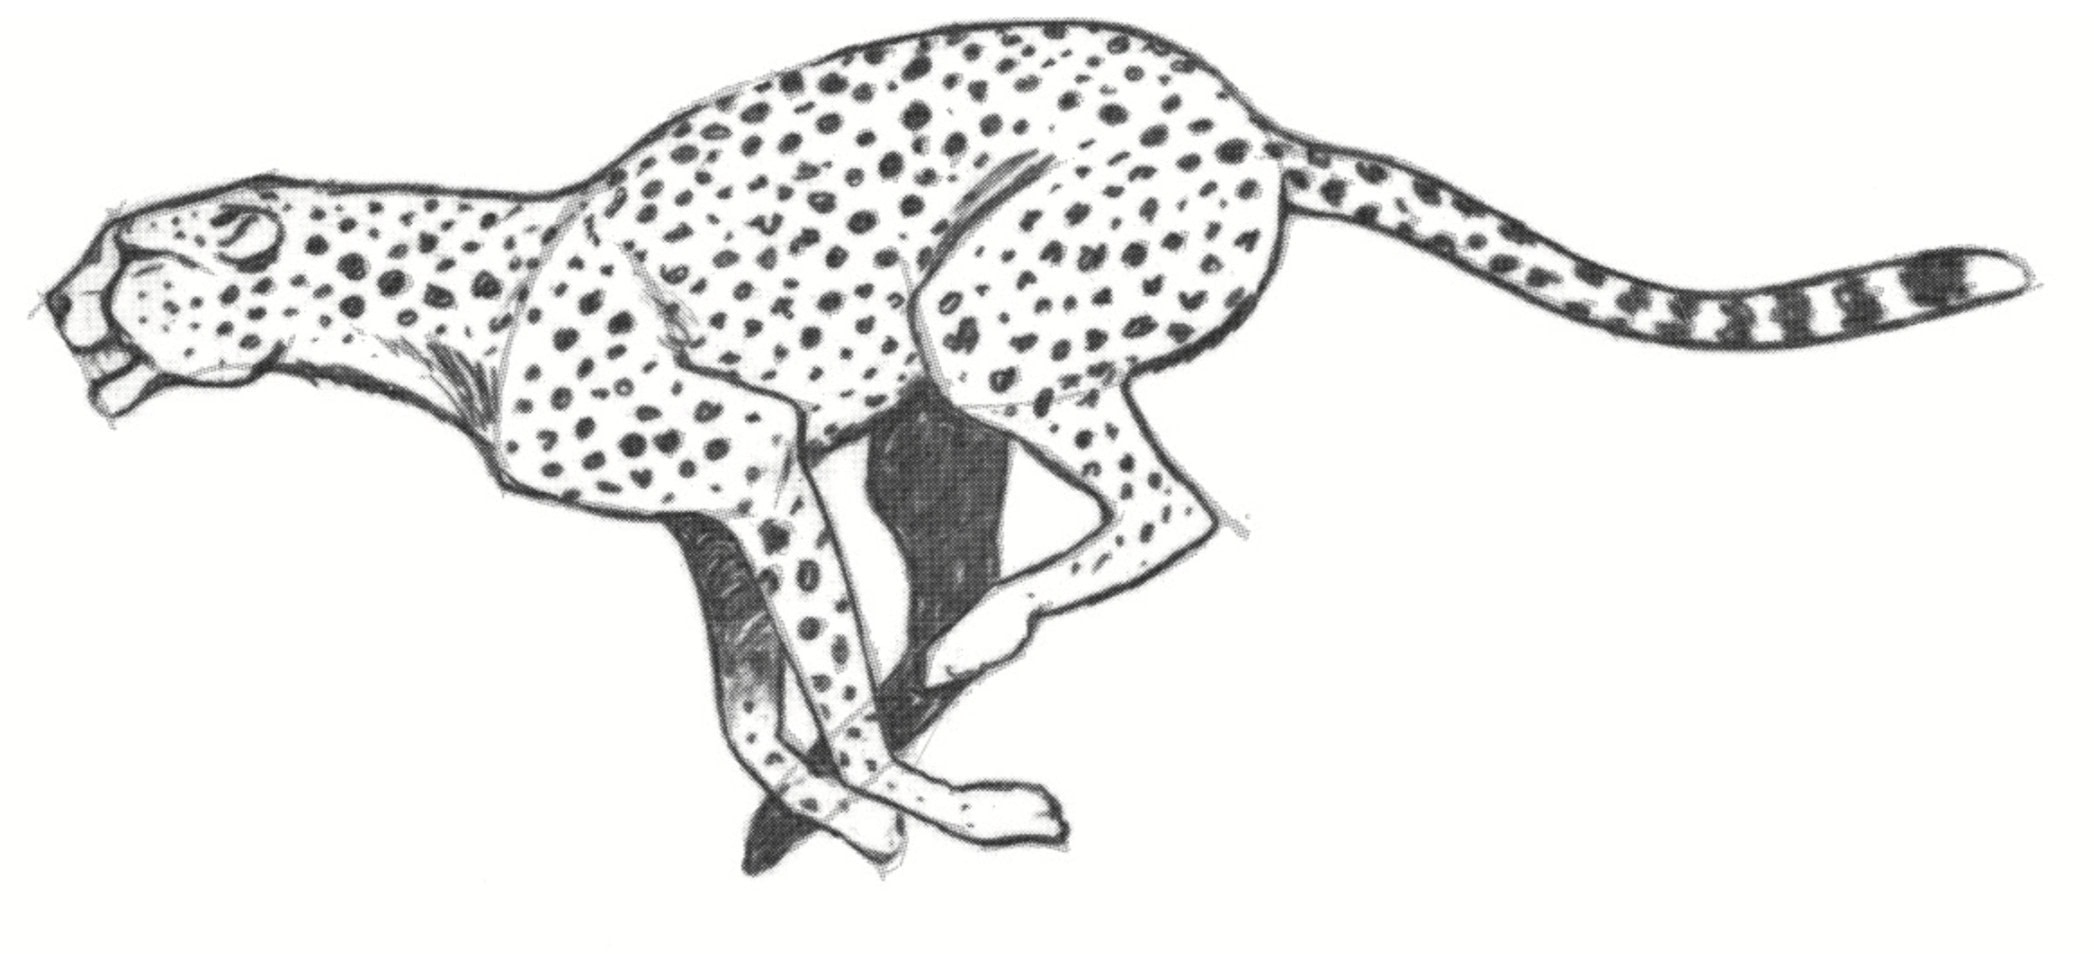 Draw A Cheetah Extract From Draw 200 Animals By Lee J Ames How To Draw An Animal Drawing